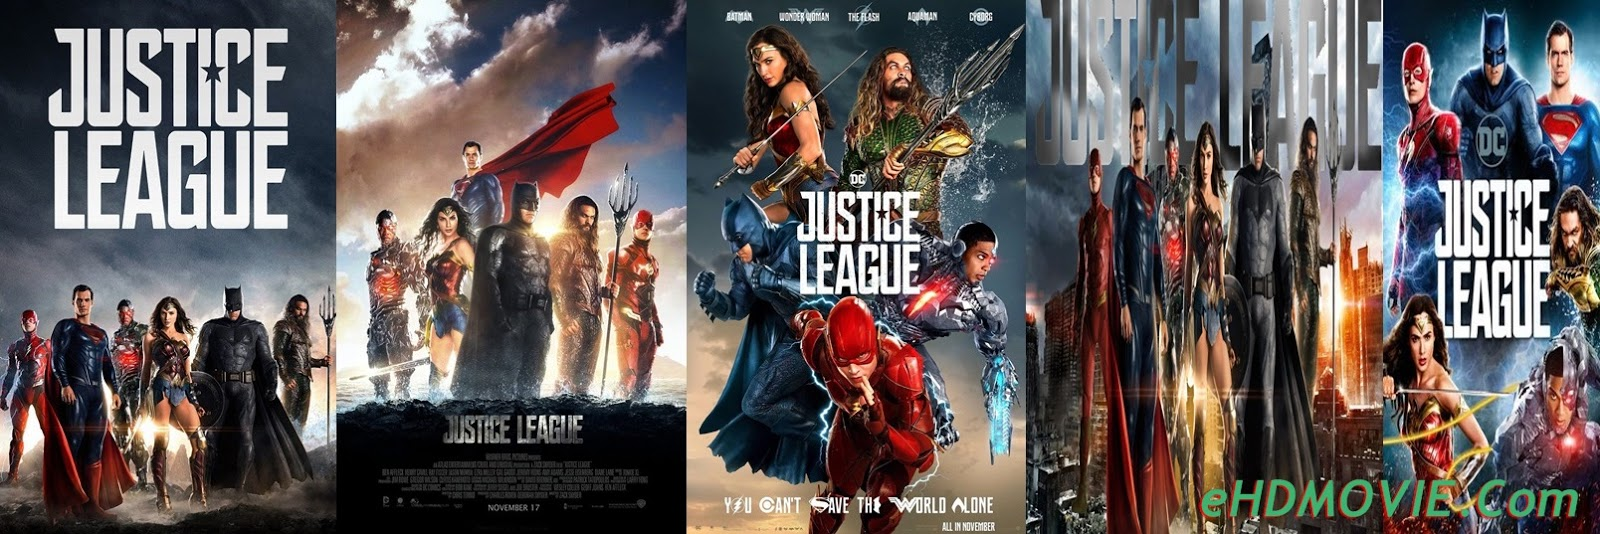 Justice League 2017 Full Movie Dual Audio [Hindi – English] 1080p - 720p - 480p ORG BRRip 350MB – 1.2GB - 3GB ESubs Free Download